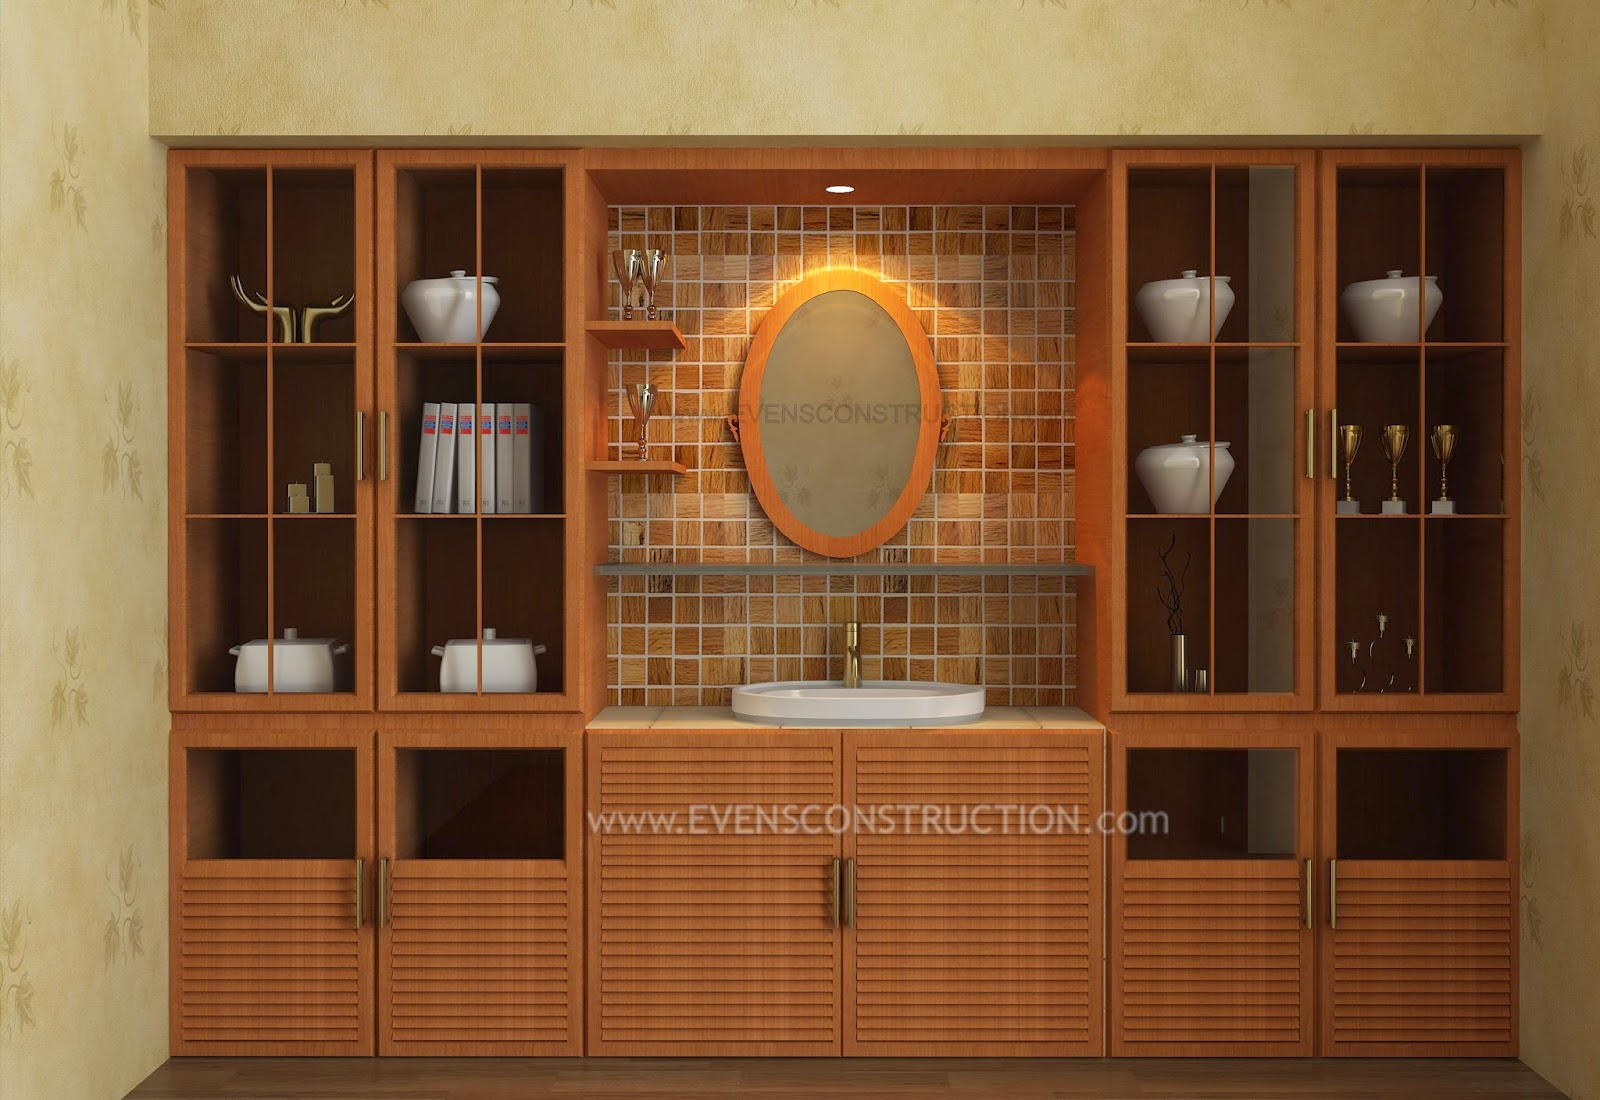 Evens construction pvt ltd crockery shelf with wash area for Dining room cupboard designs